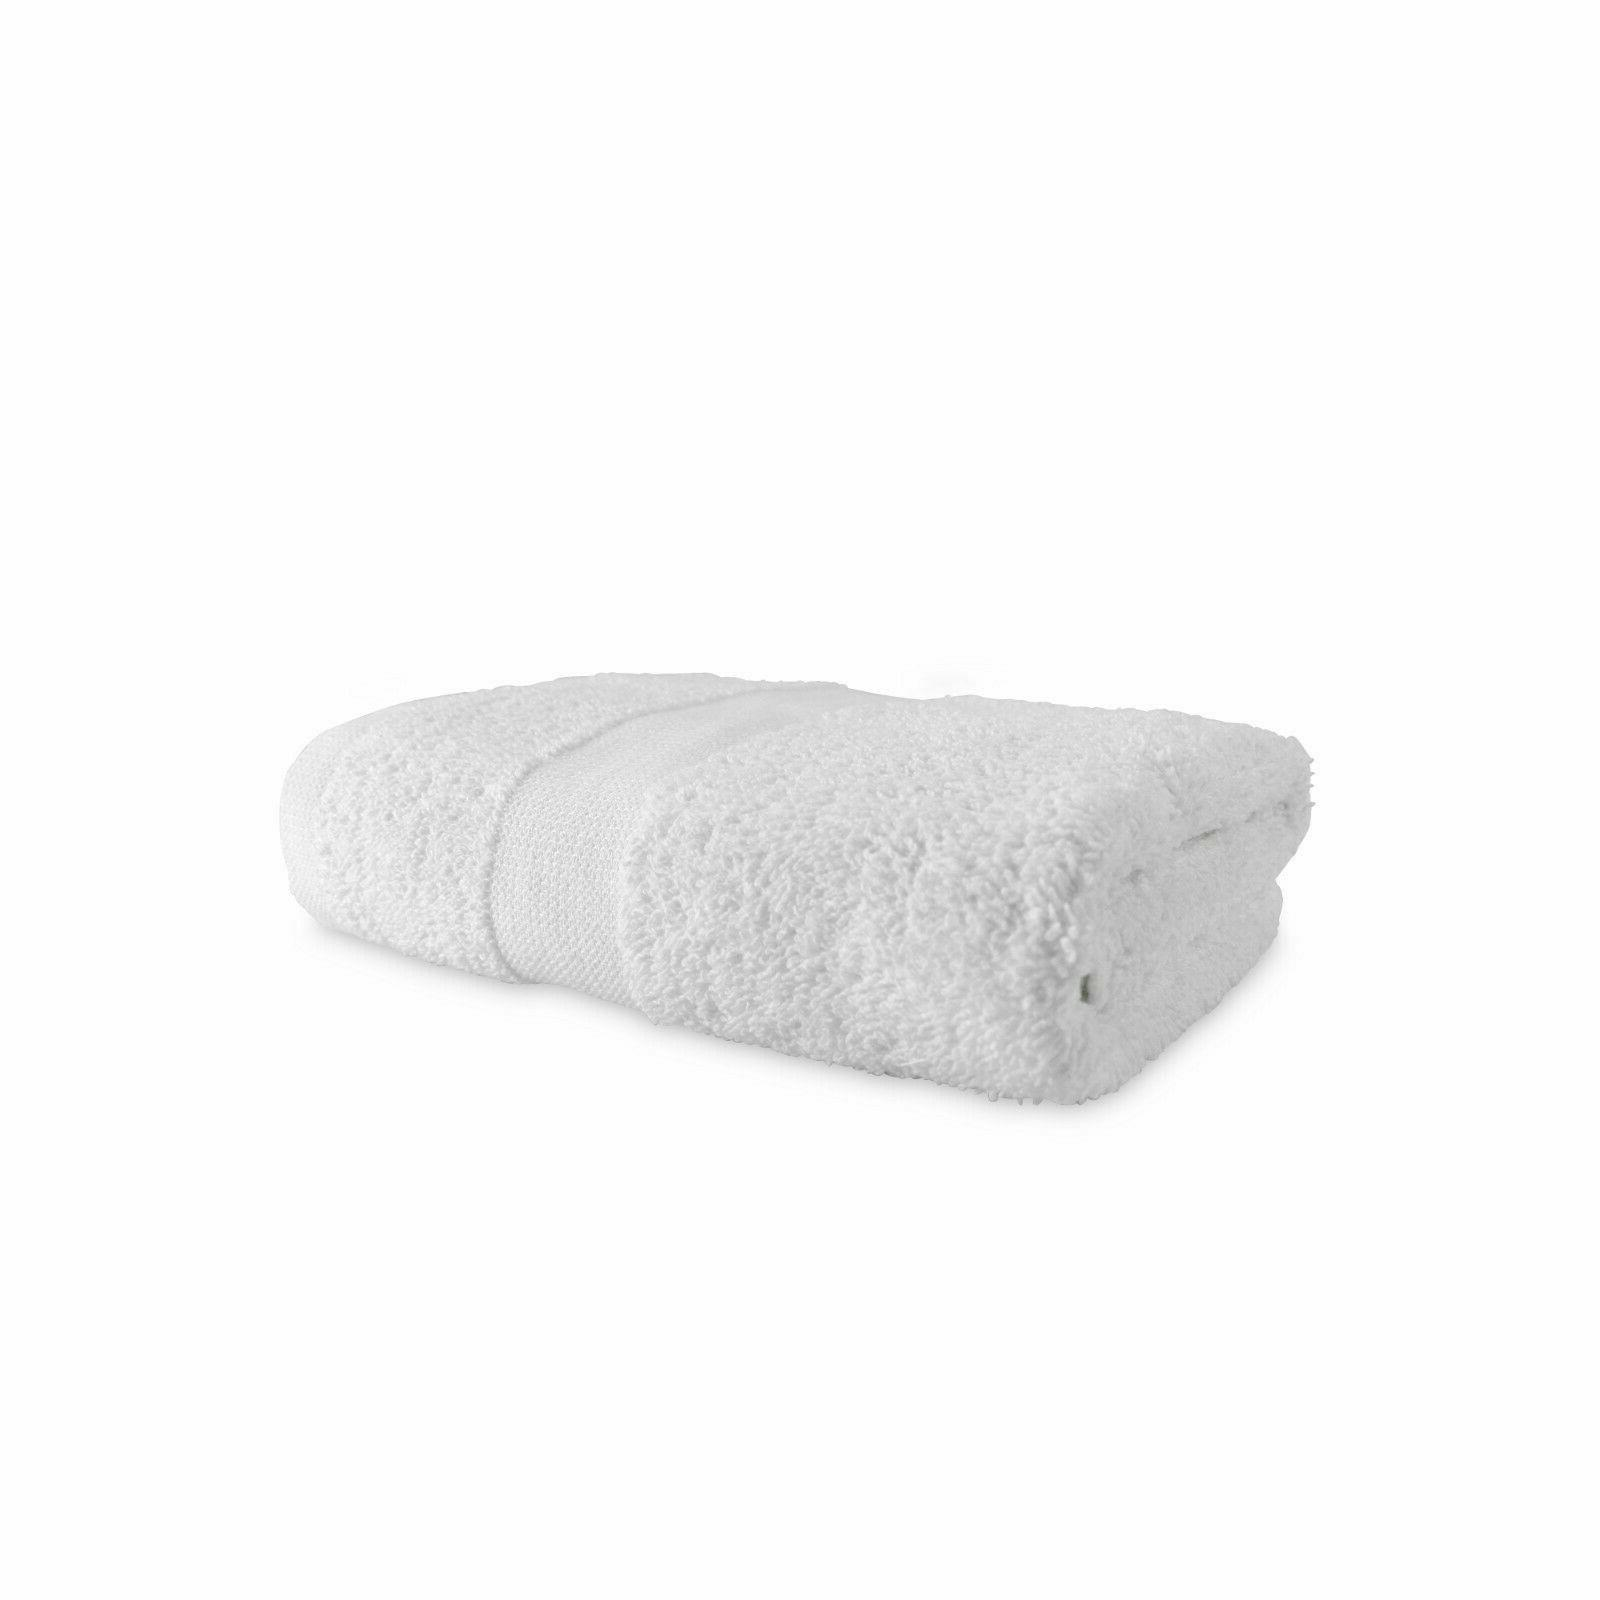 12 pack of admiral hand towels white